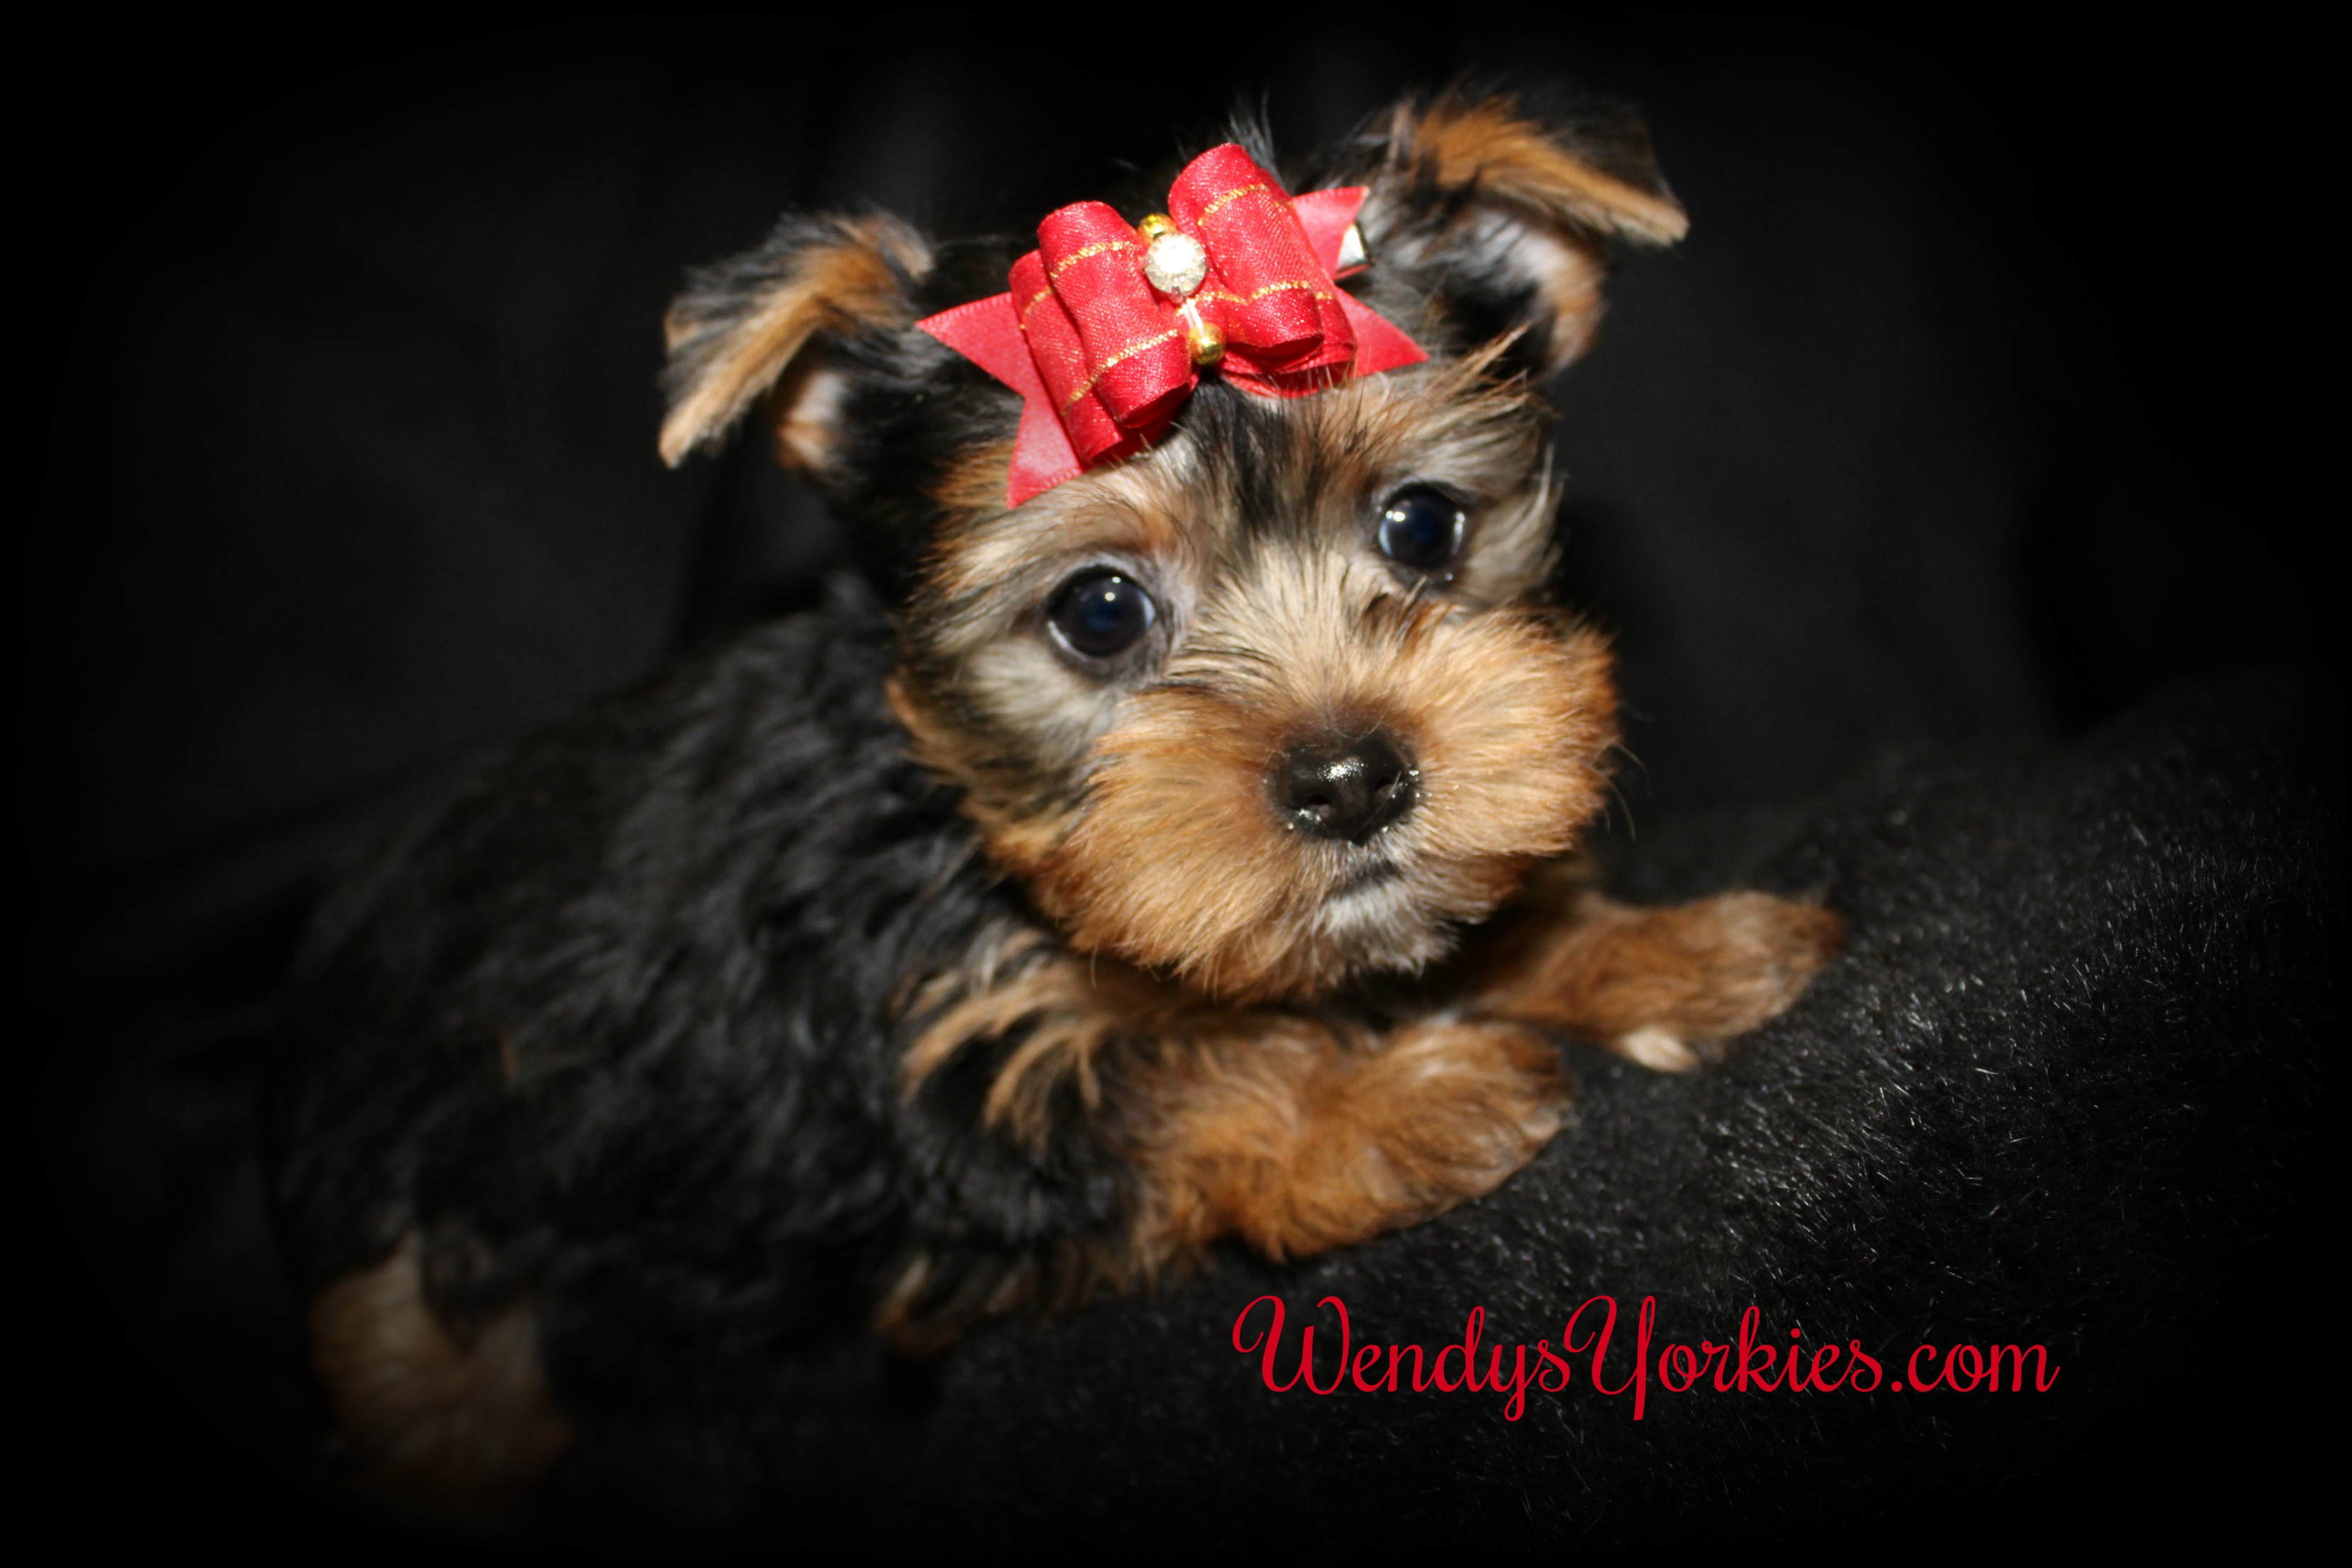 Yorkie puppies for sale, Lacy m1